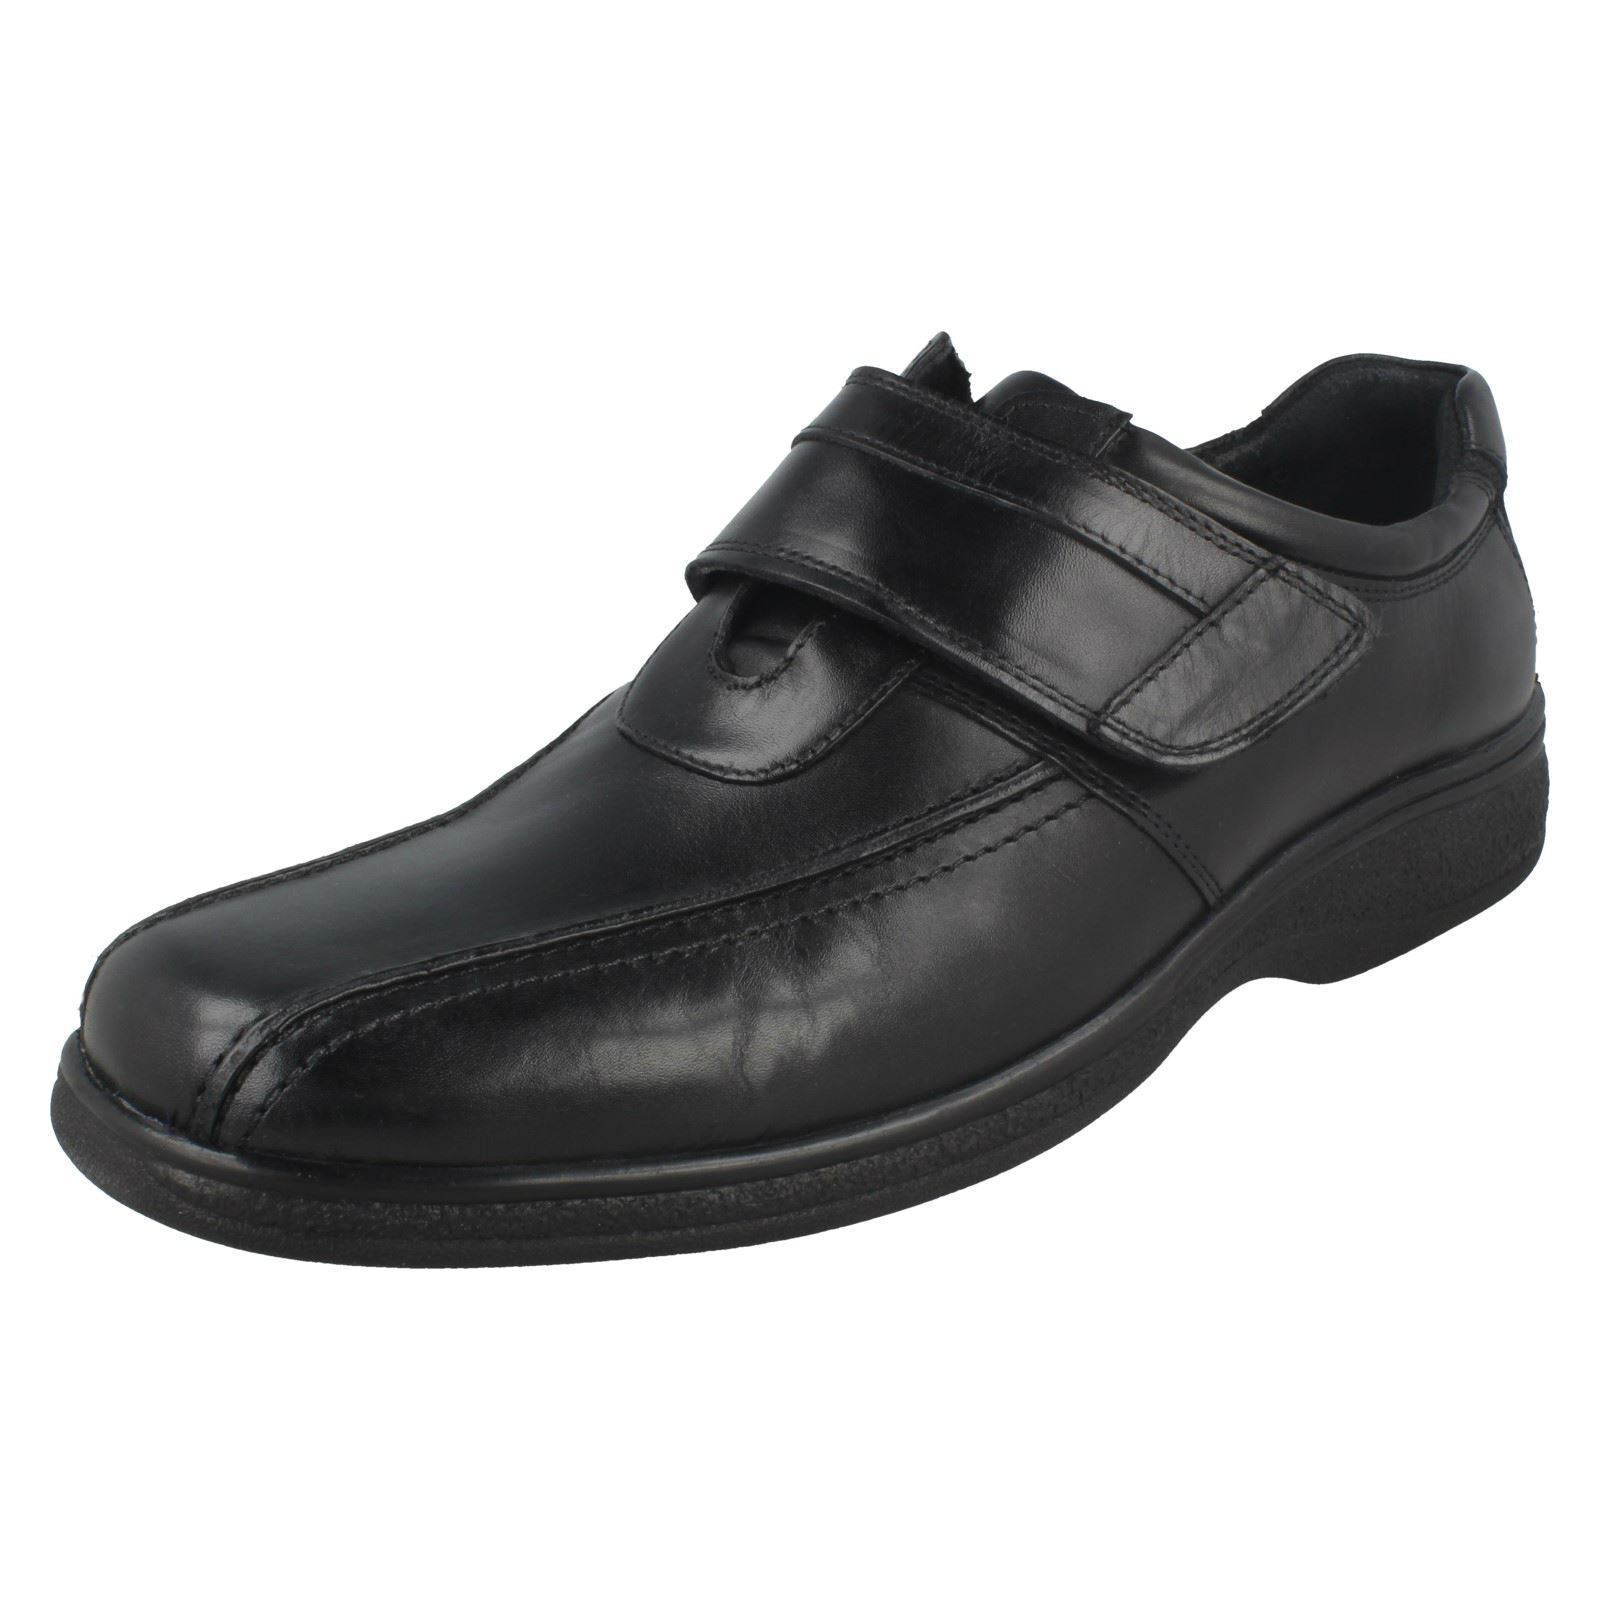 Hush Puppies Mens Wide Fit Formal Schuhes Bourton Idea